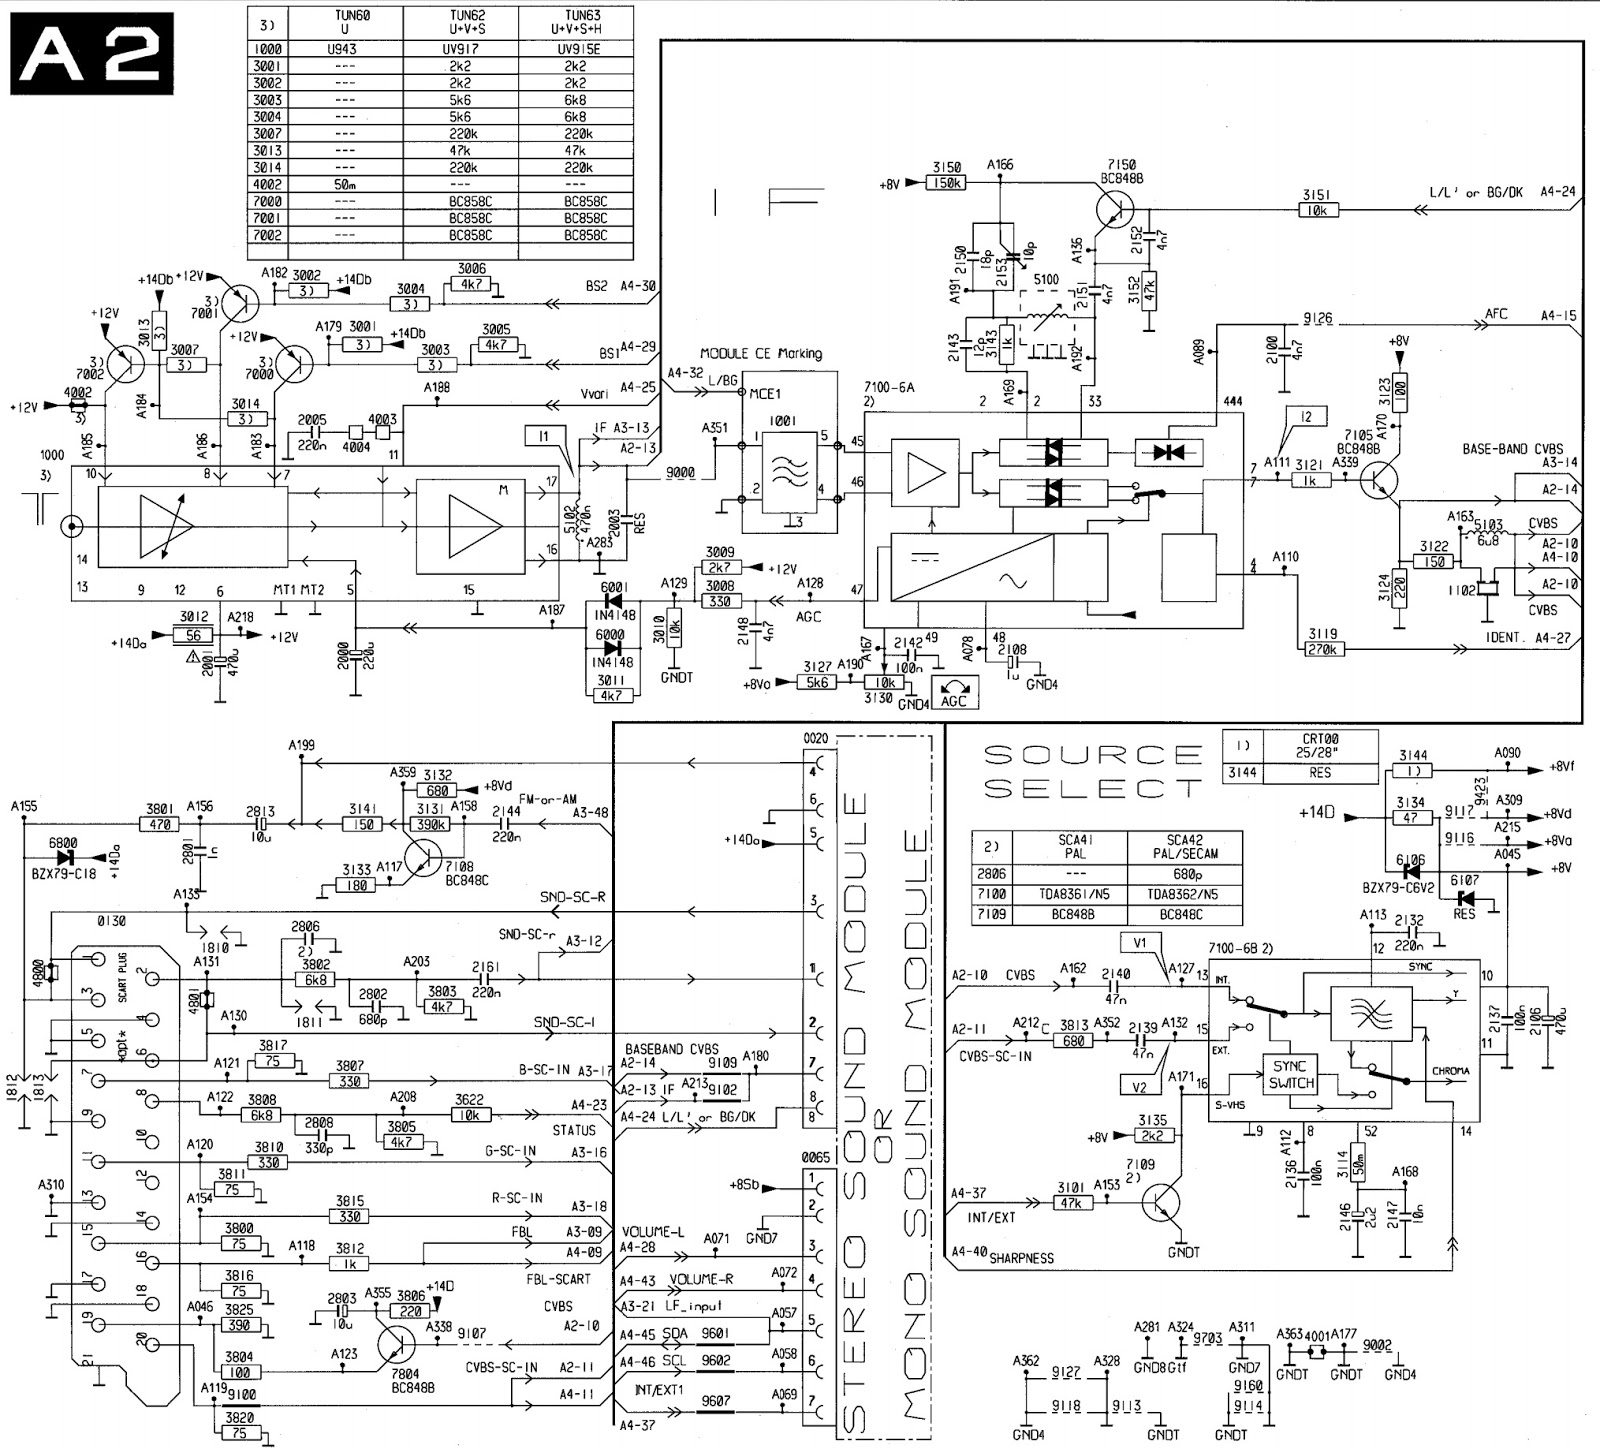 small resolution of philips 286ns 05 chassis comet circuit diagram full schematic circuit diagramfull click on the schematic to magnify